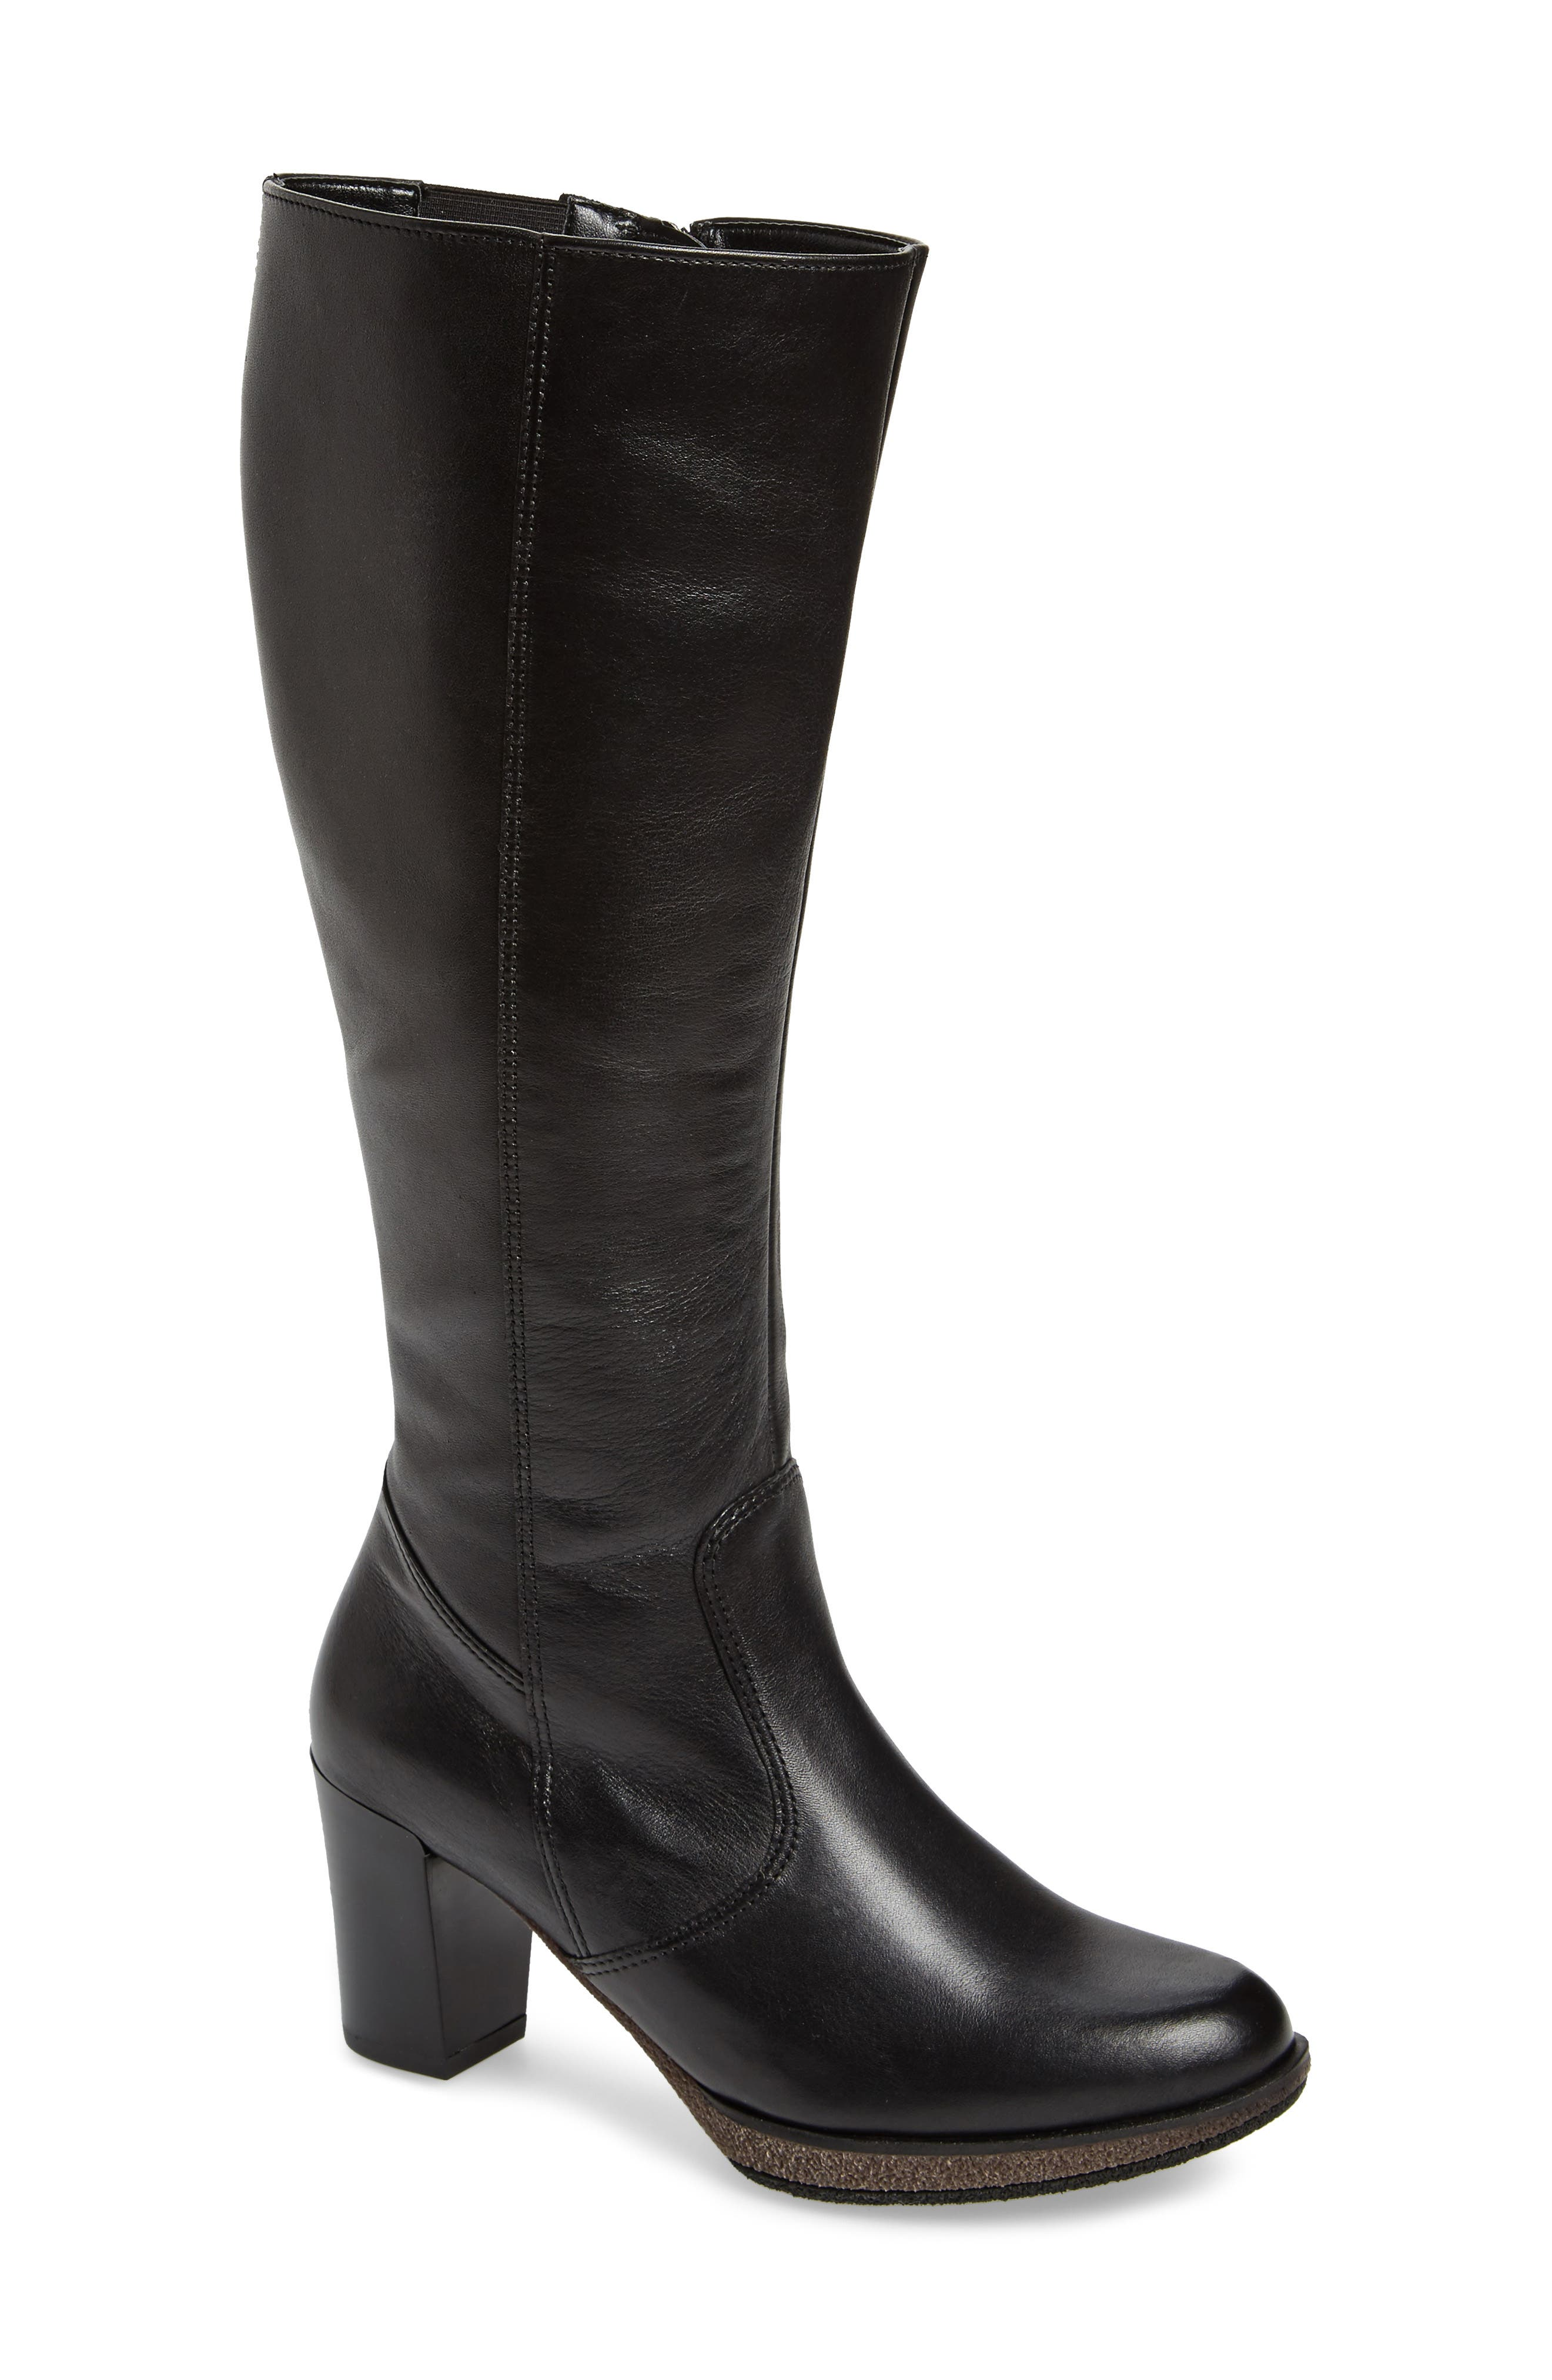 Bexley Knee High Boot,                             Main thumbnail 1, color,                             Black Leather